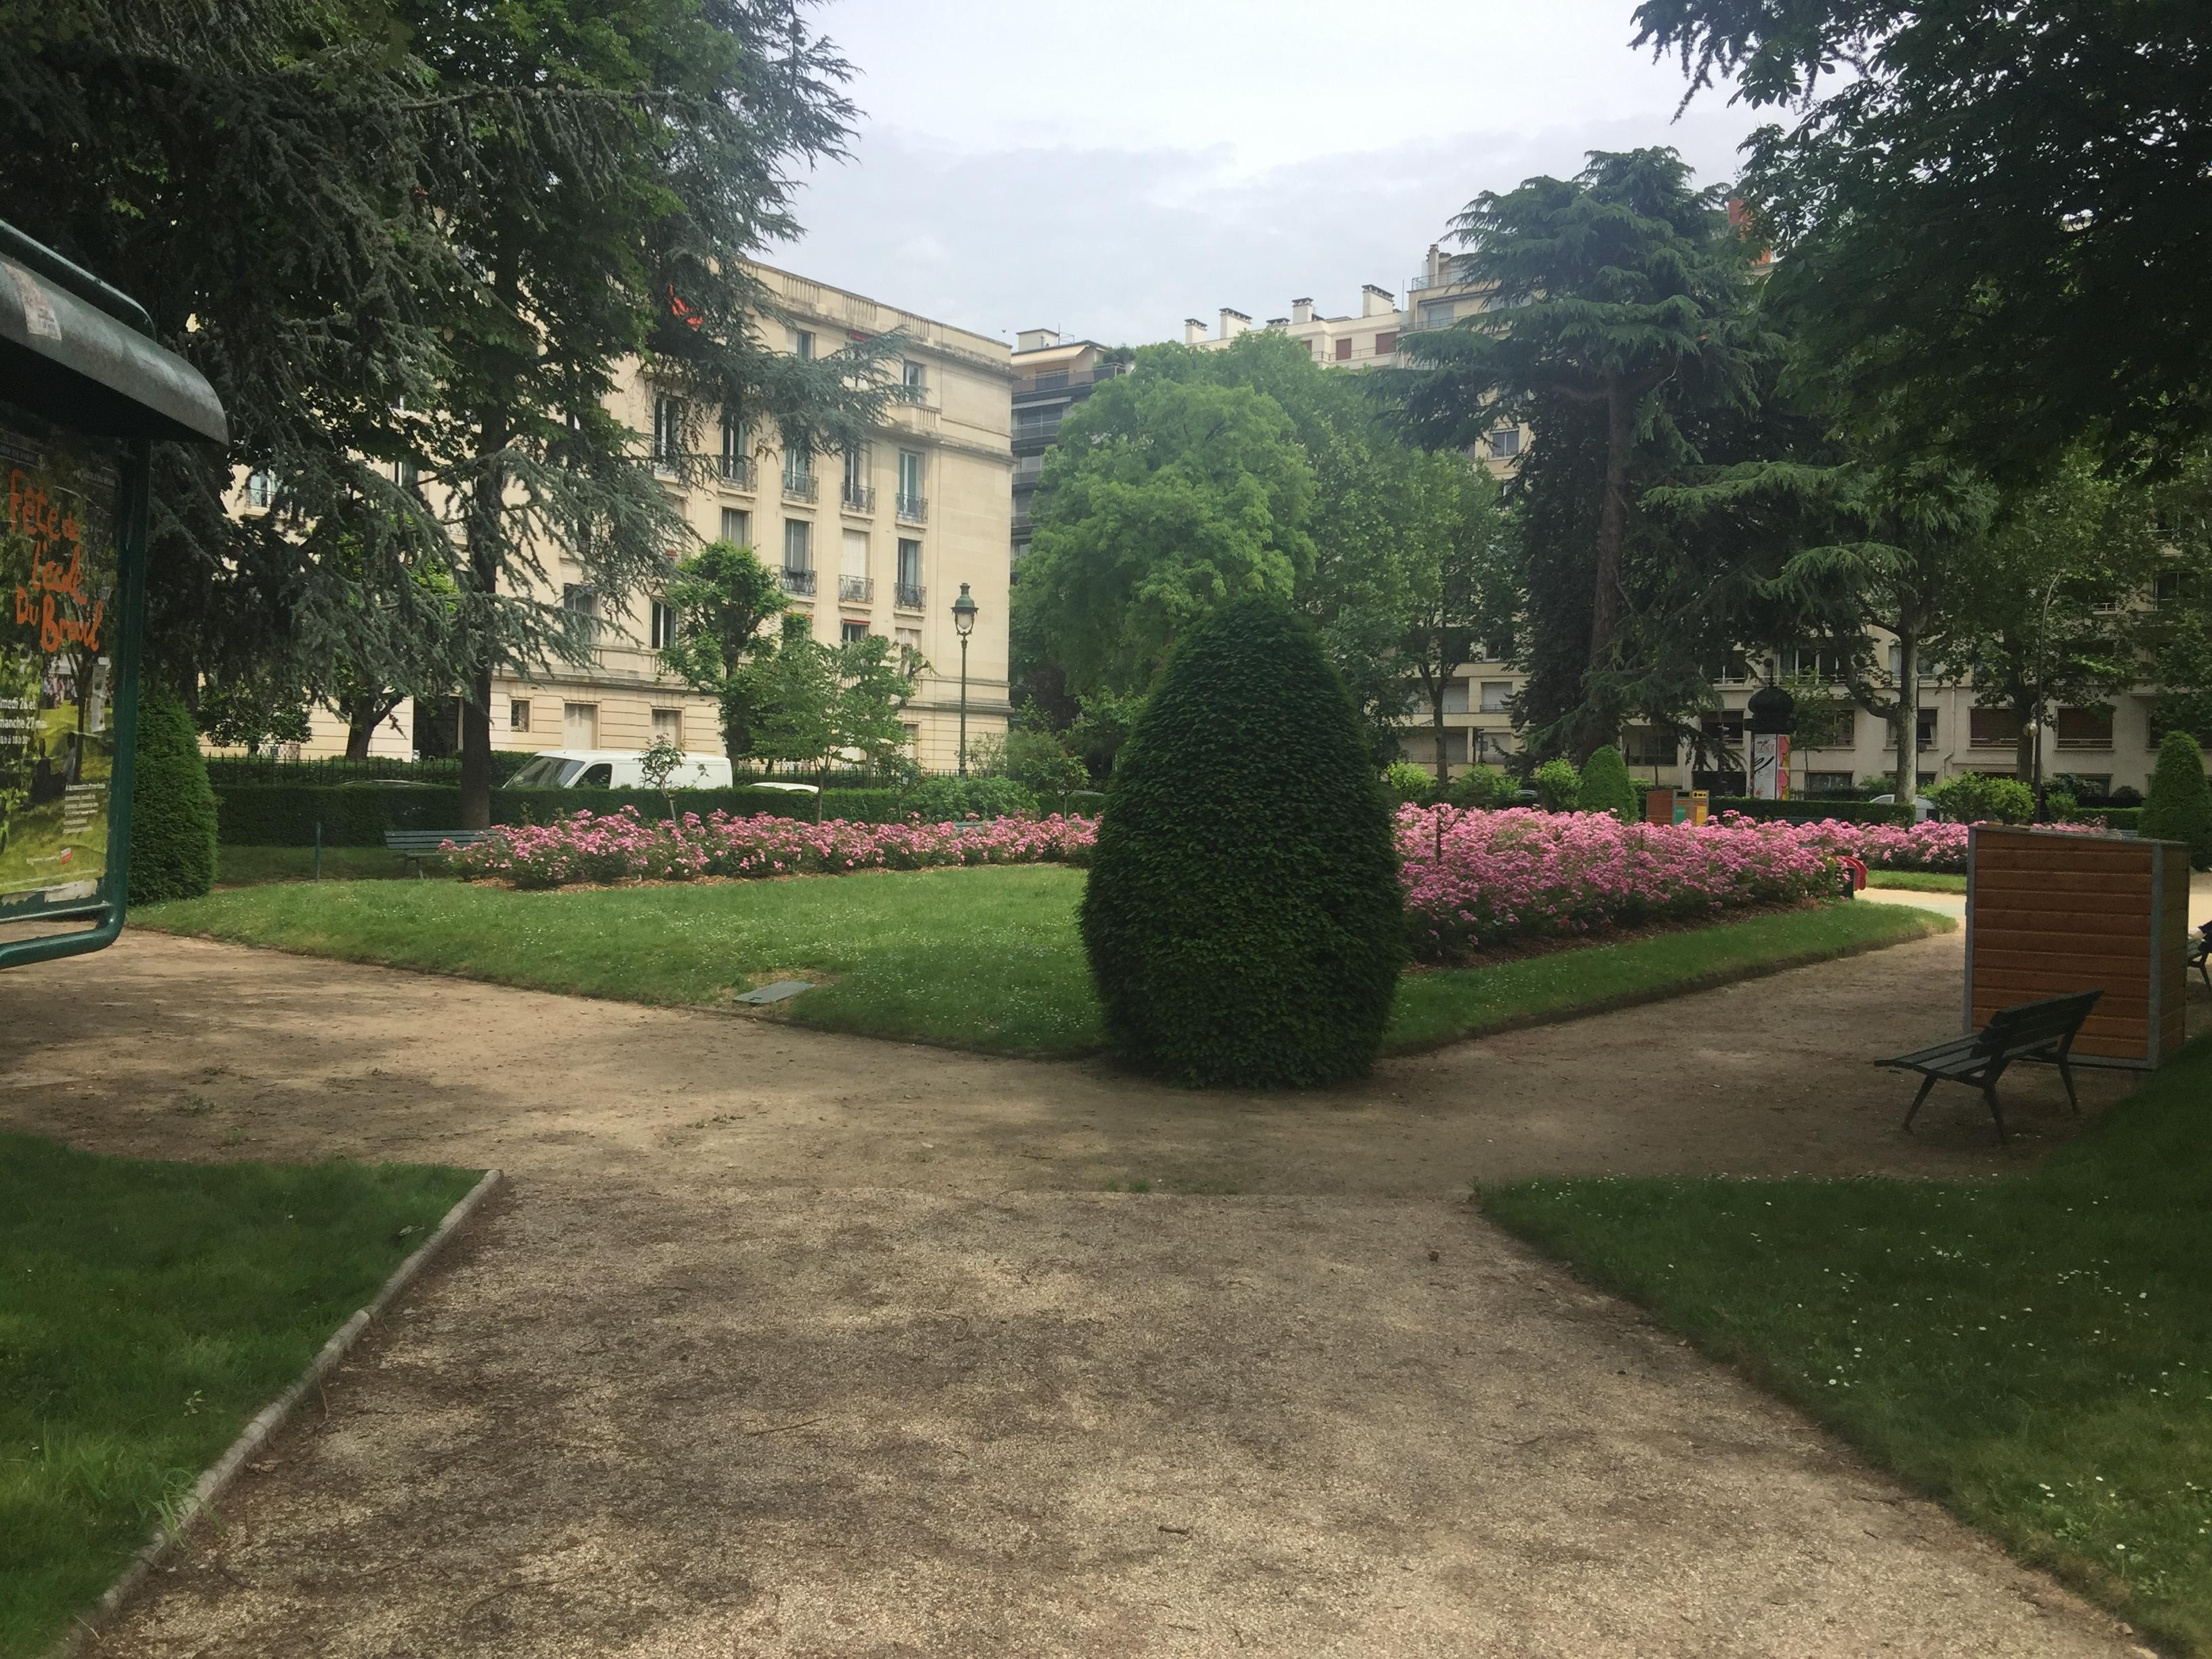 Small park with roses in Paris